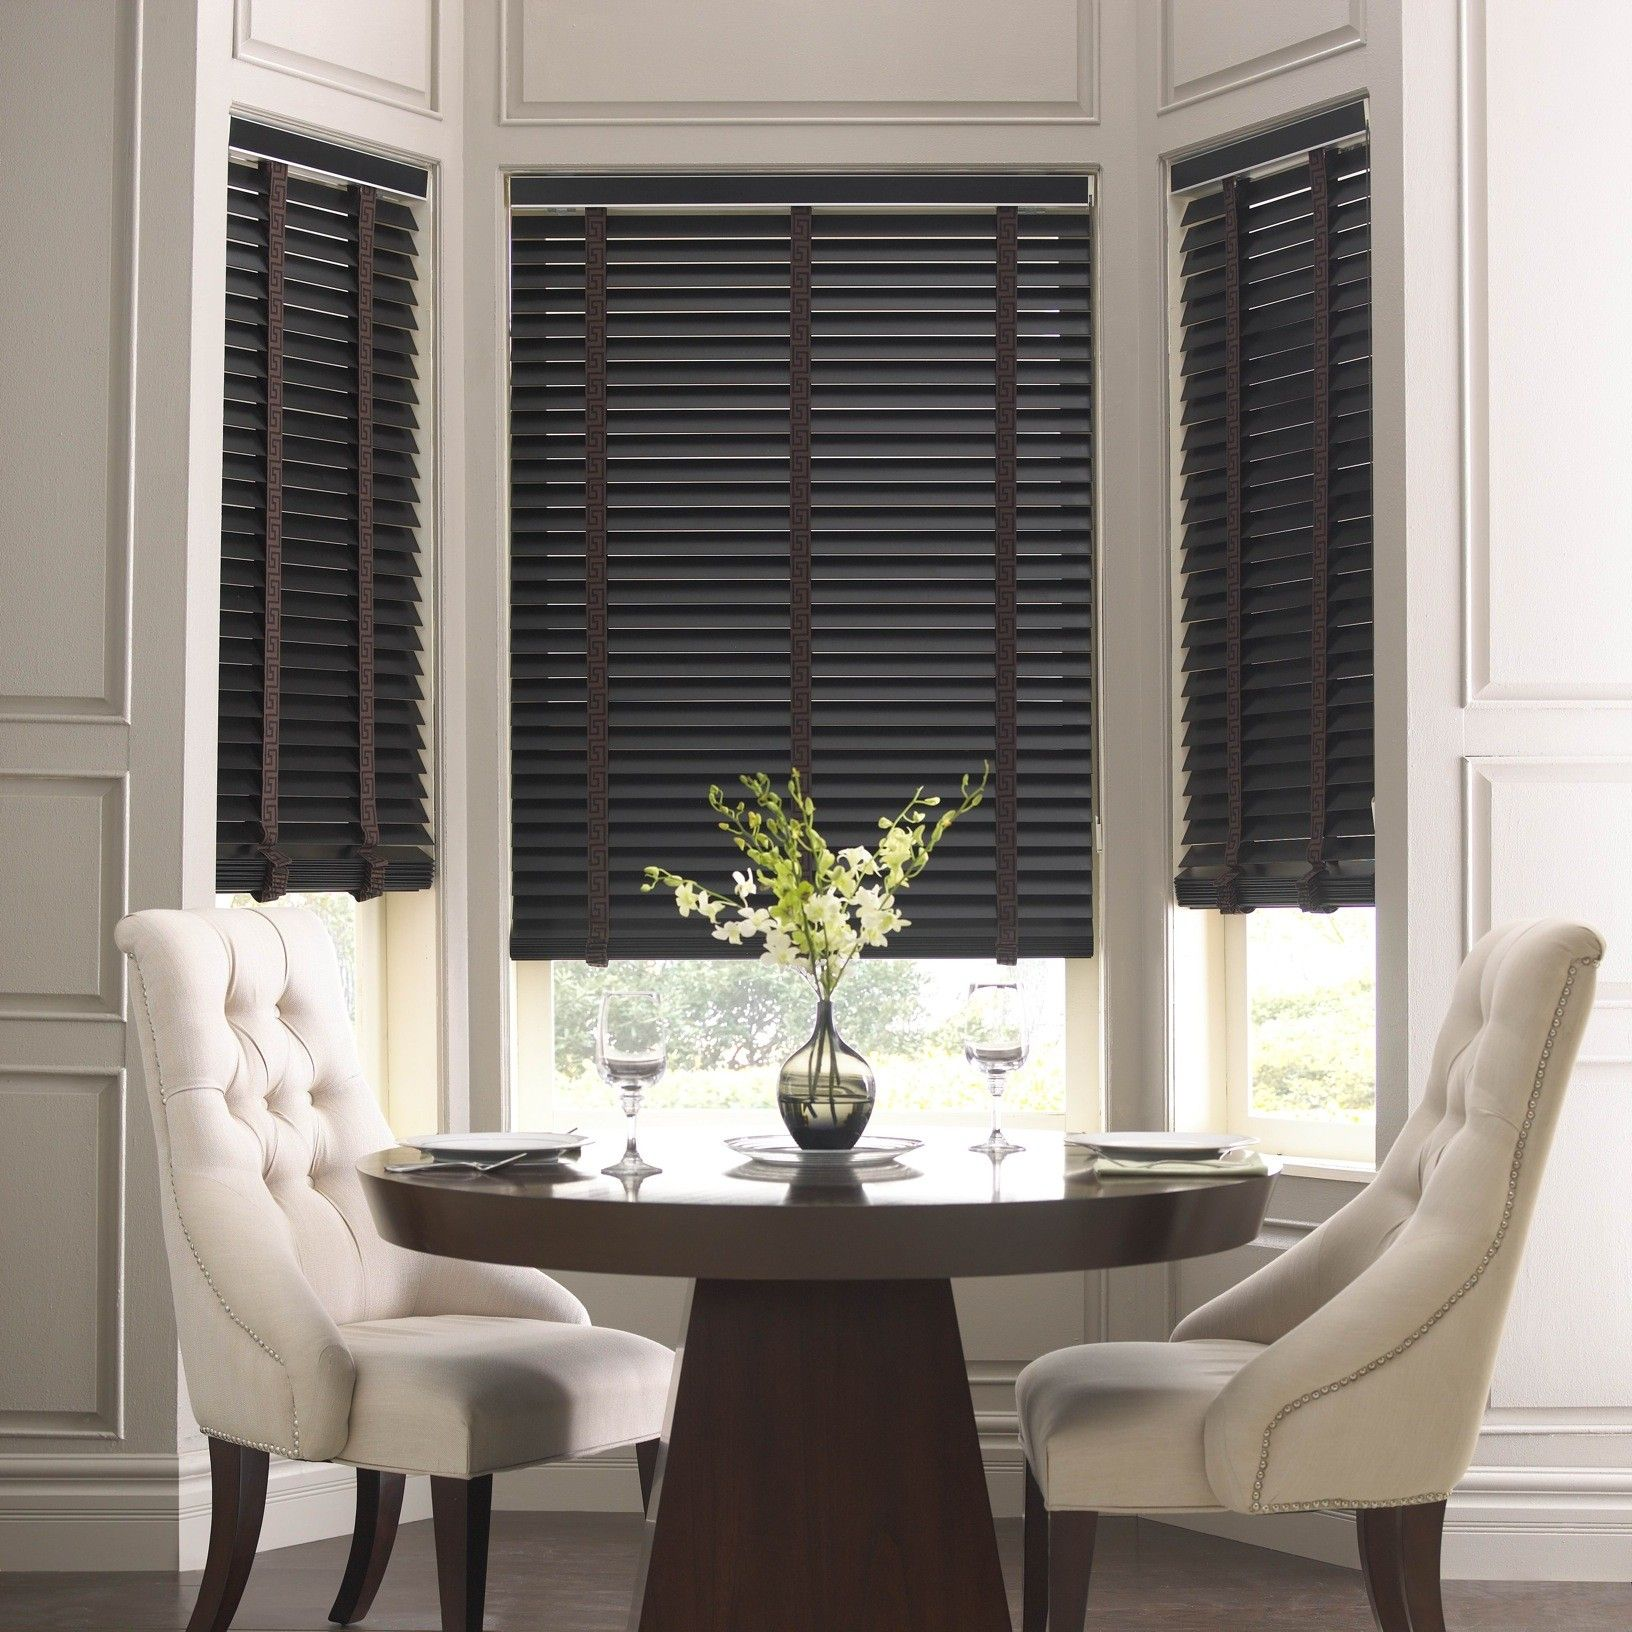 wooden blinds are sturdy light weight ideal for large windows for